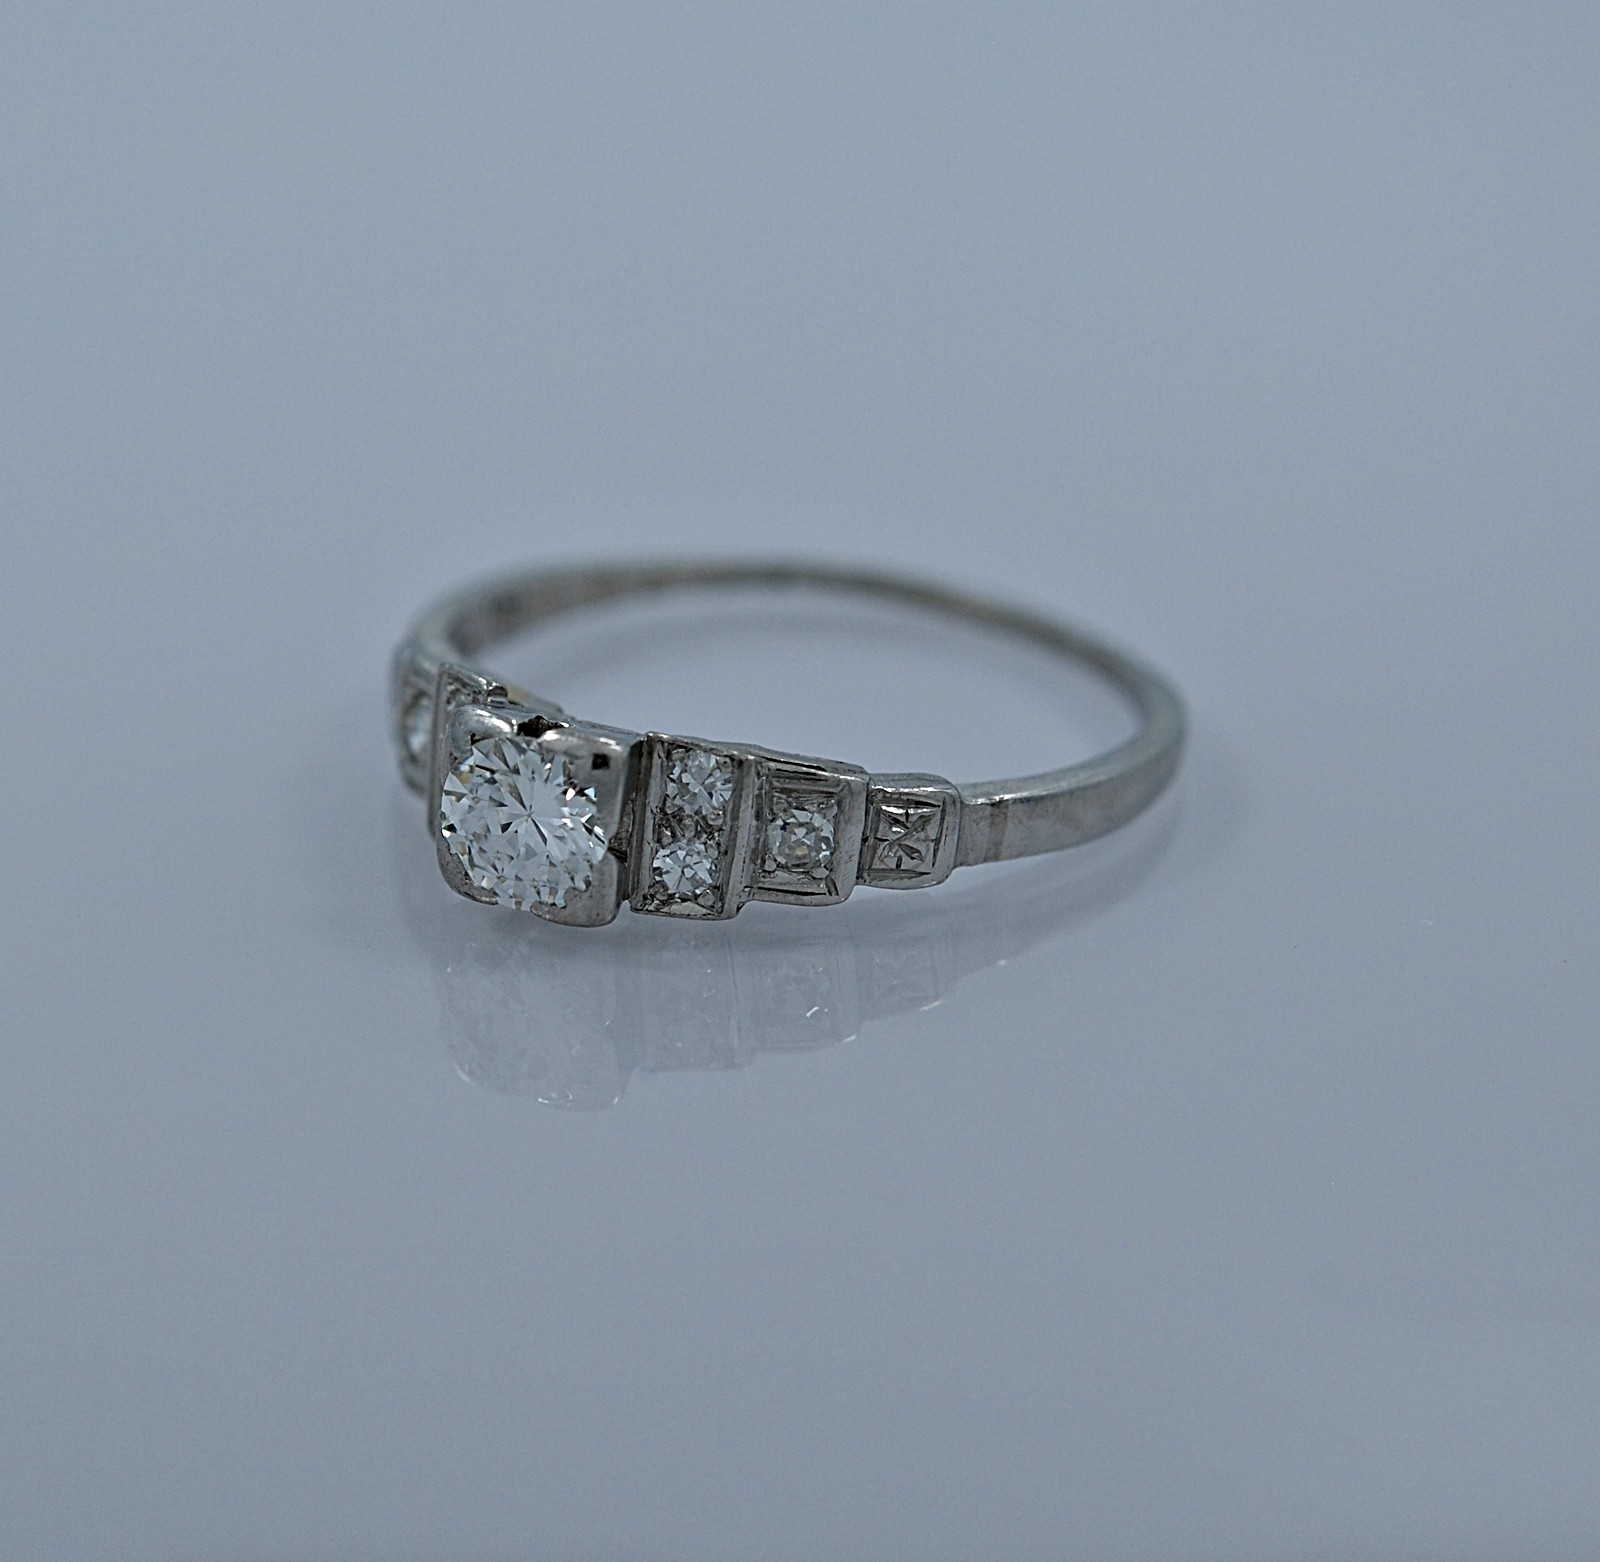 33-ct-diamond-platinum-art-deco-engagement-ring